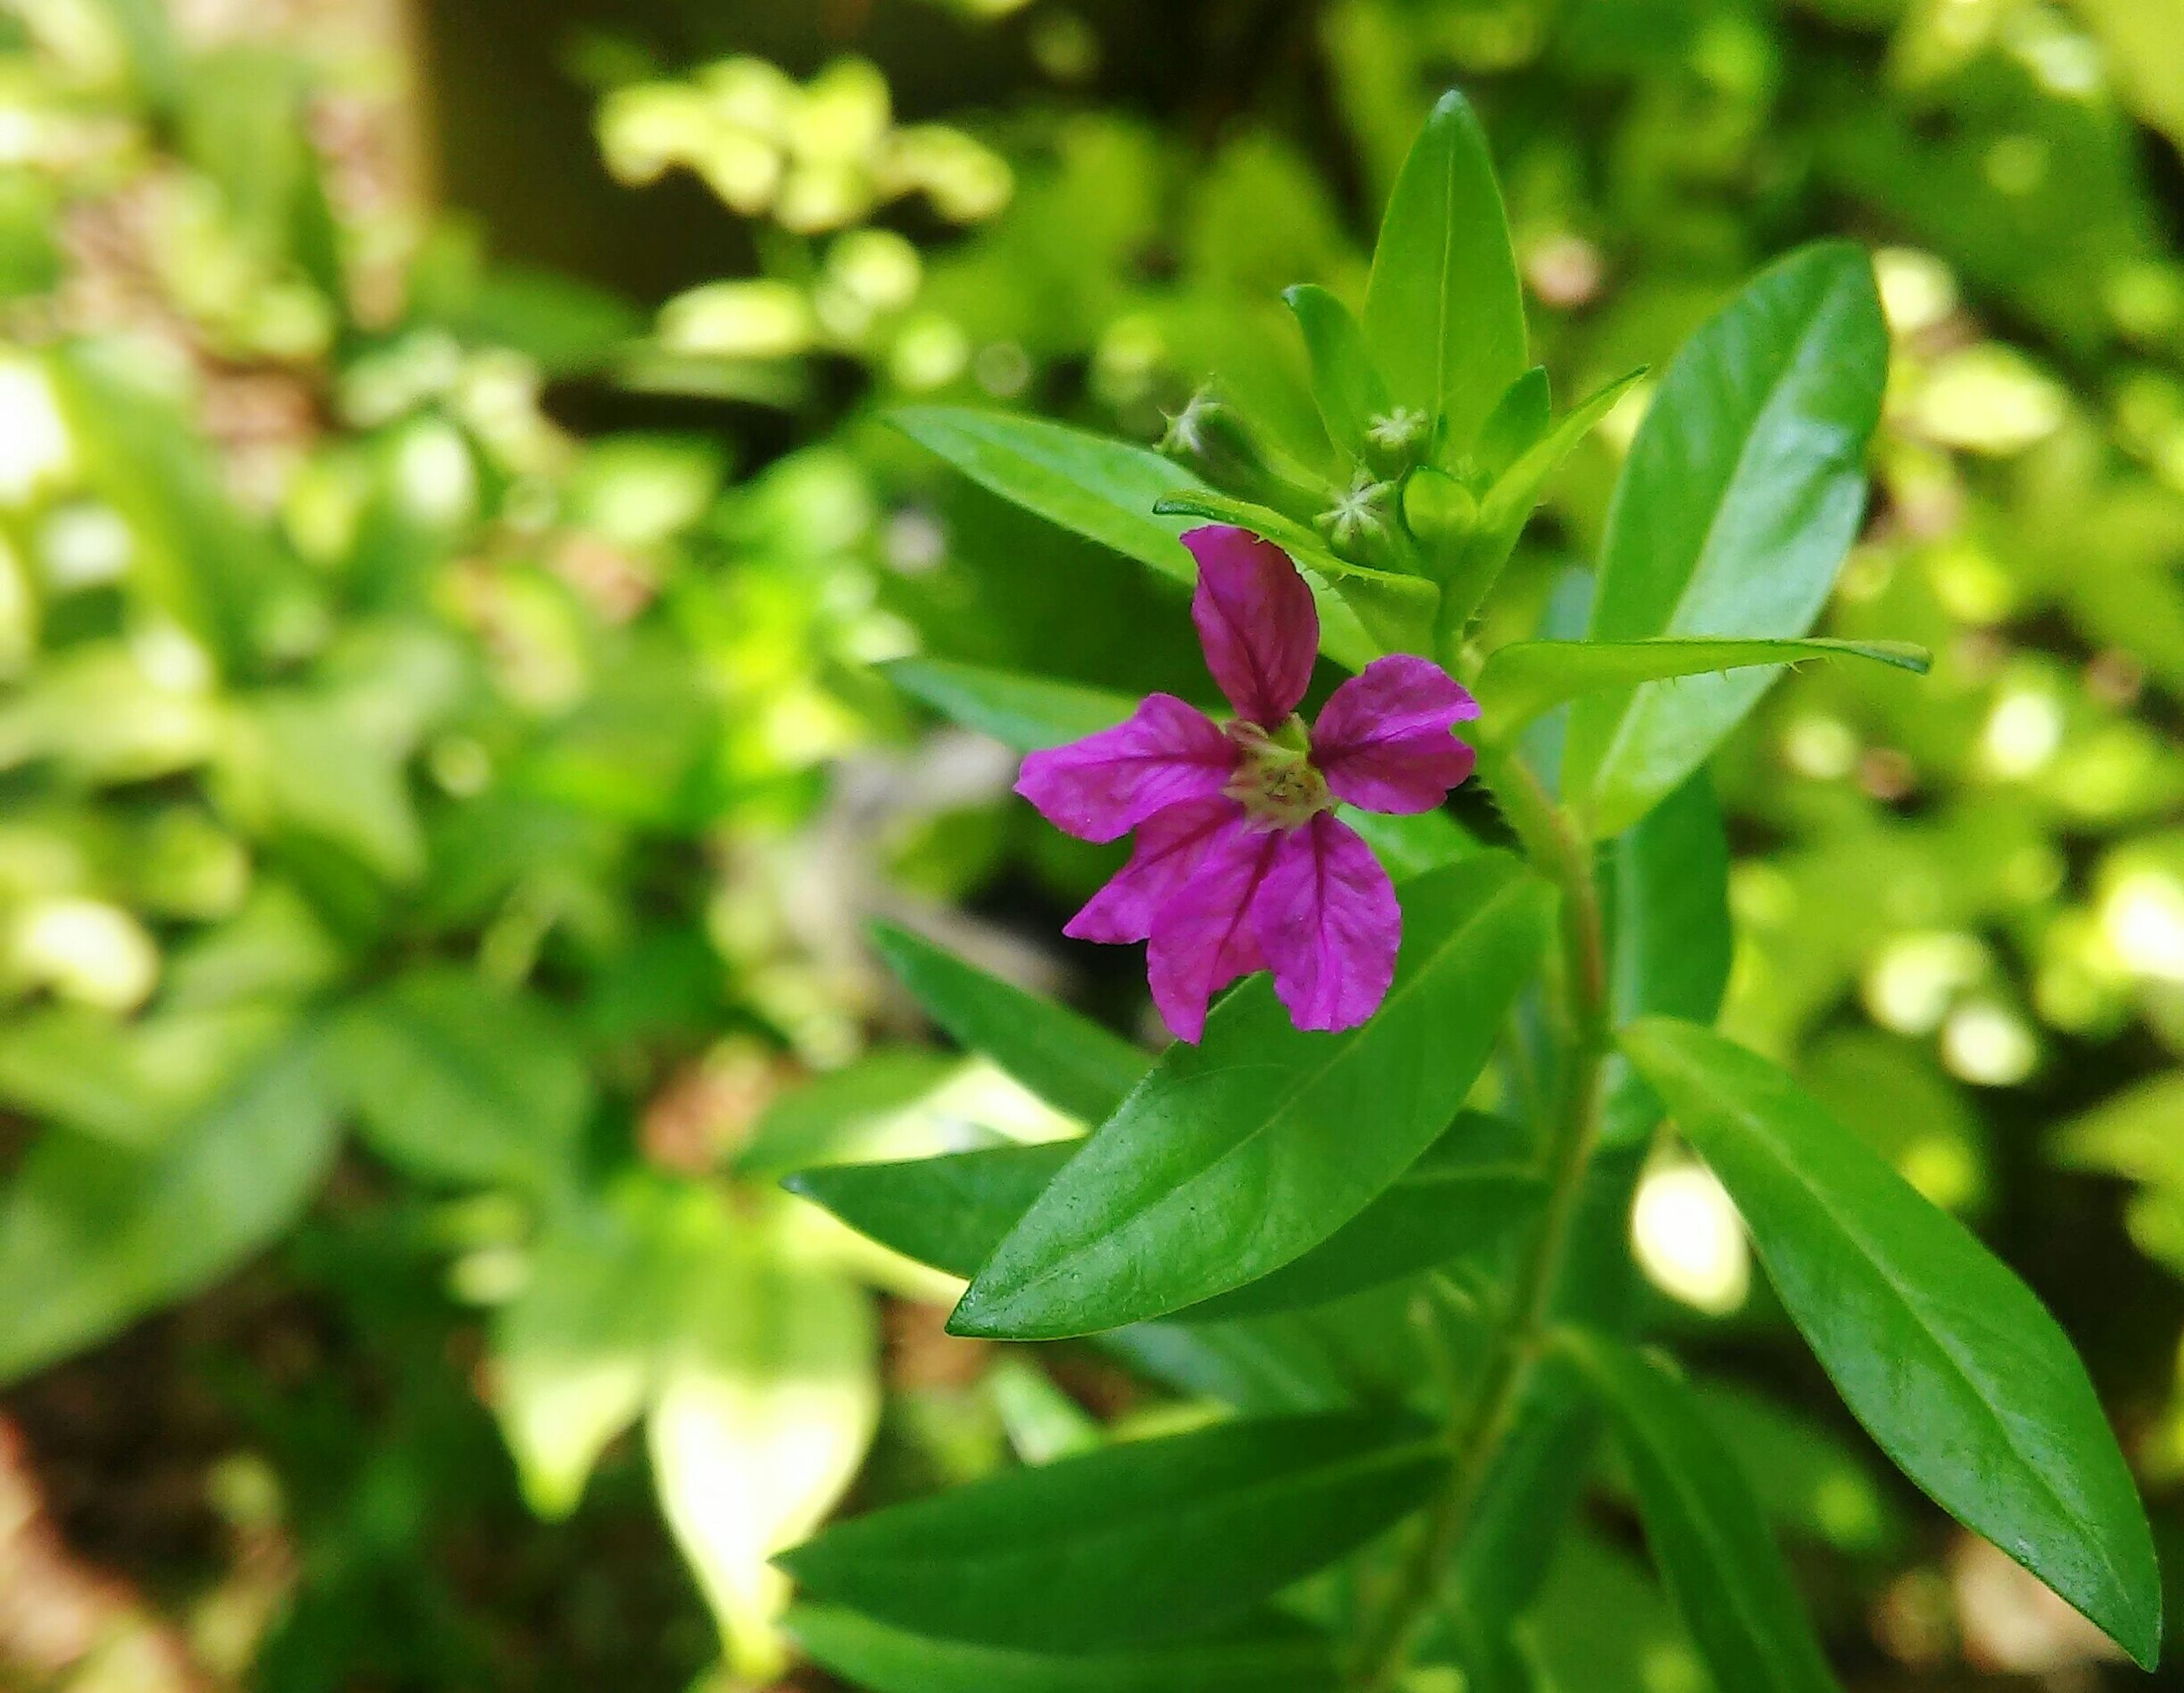 flower, freshness, growth, petal, fragility, leaf, beauty in nature, flower head, pink color, plant, nature, blooming, close-up, green color, focus on foreground, purple, in bloom, park - man made space, outdoors, pink